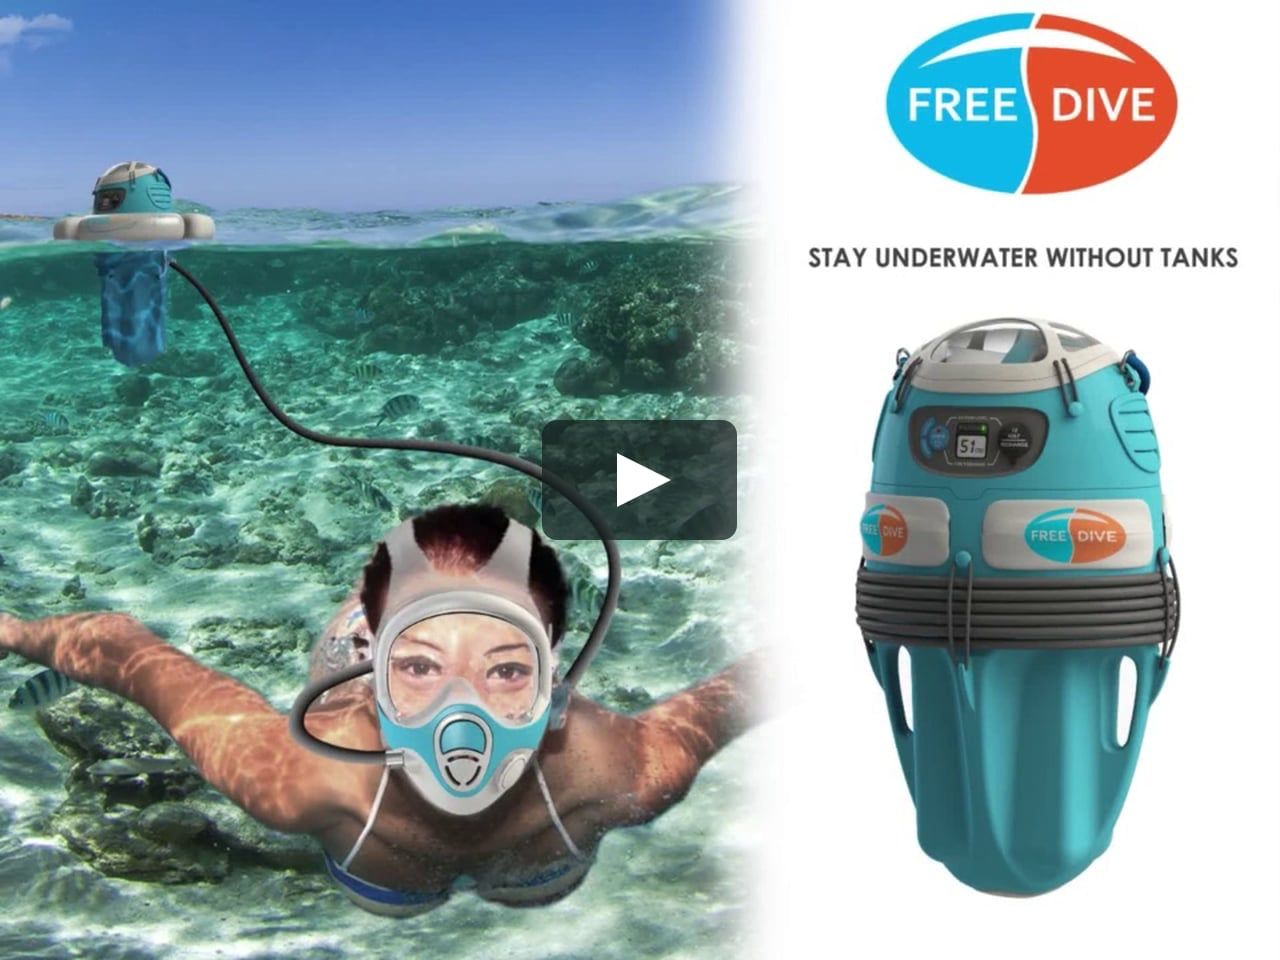 Freedive - Stay Underwater Without Tanks | Snorkeling ...